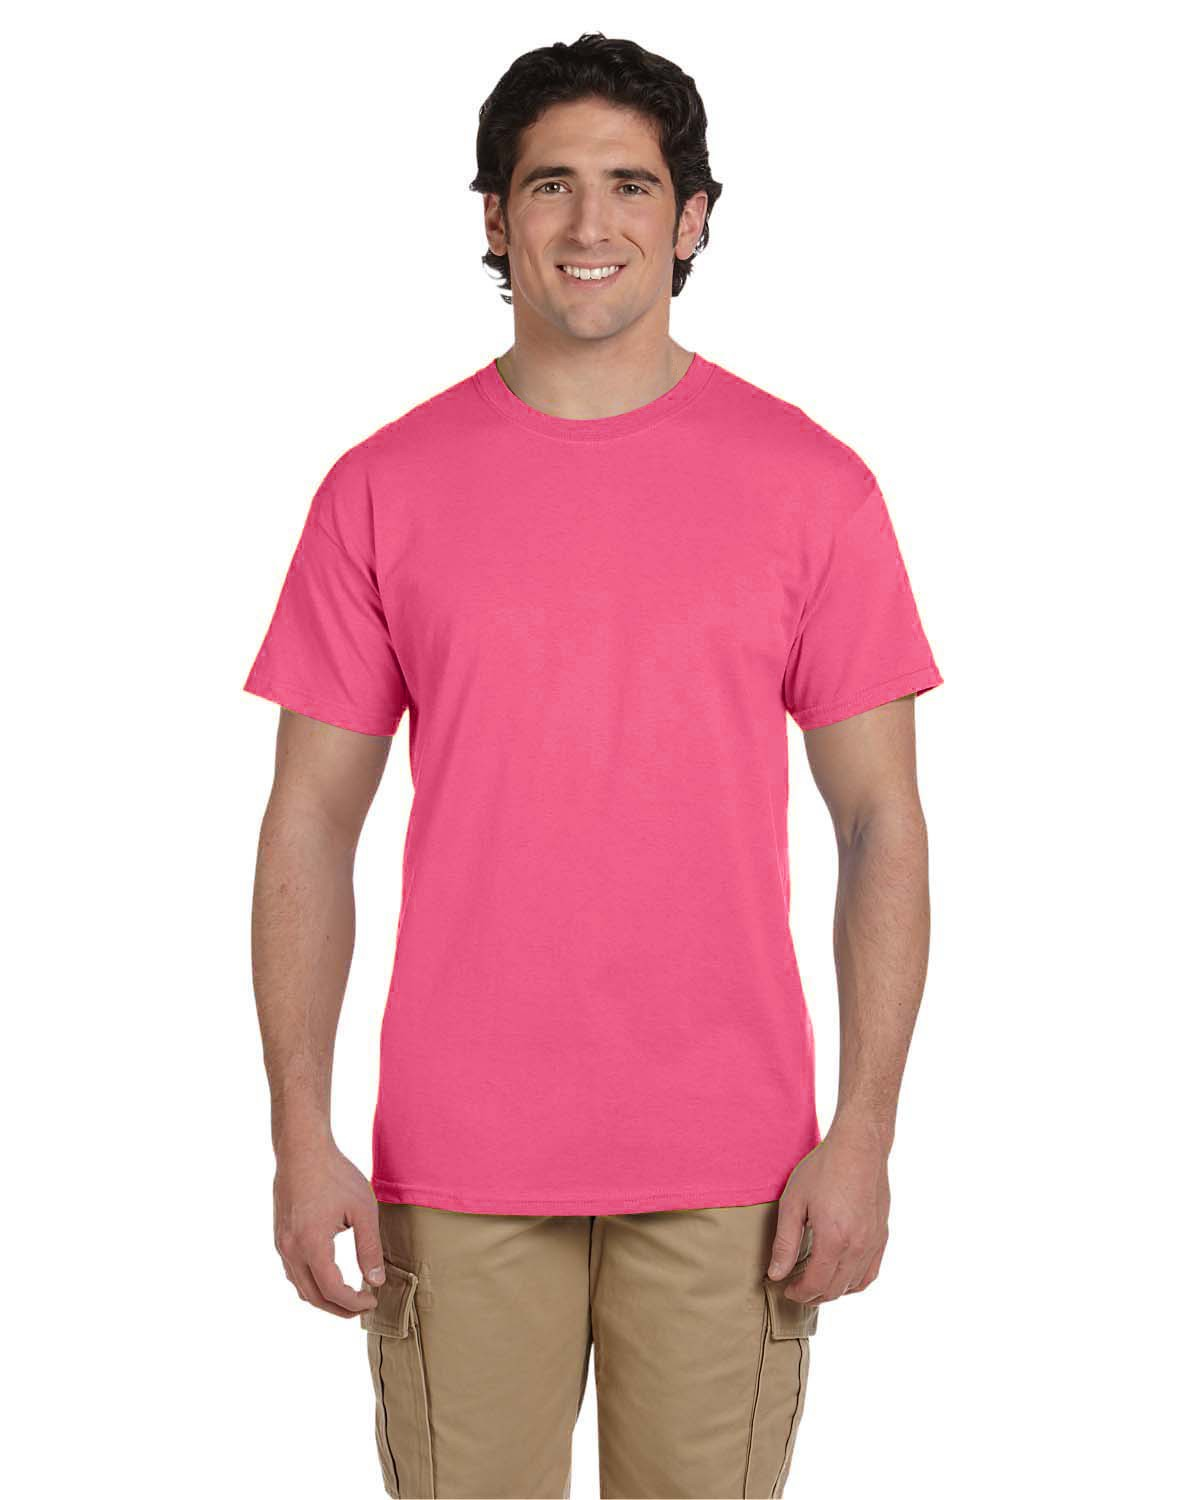 3931 Fruit of the Loom NEON PINK